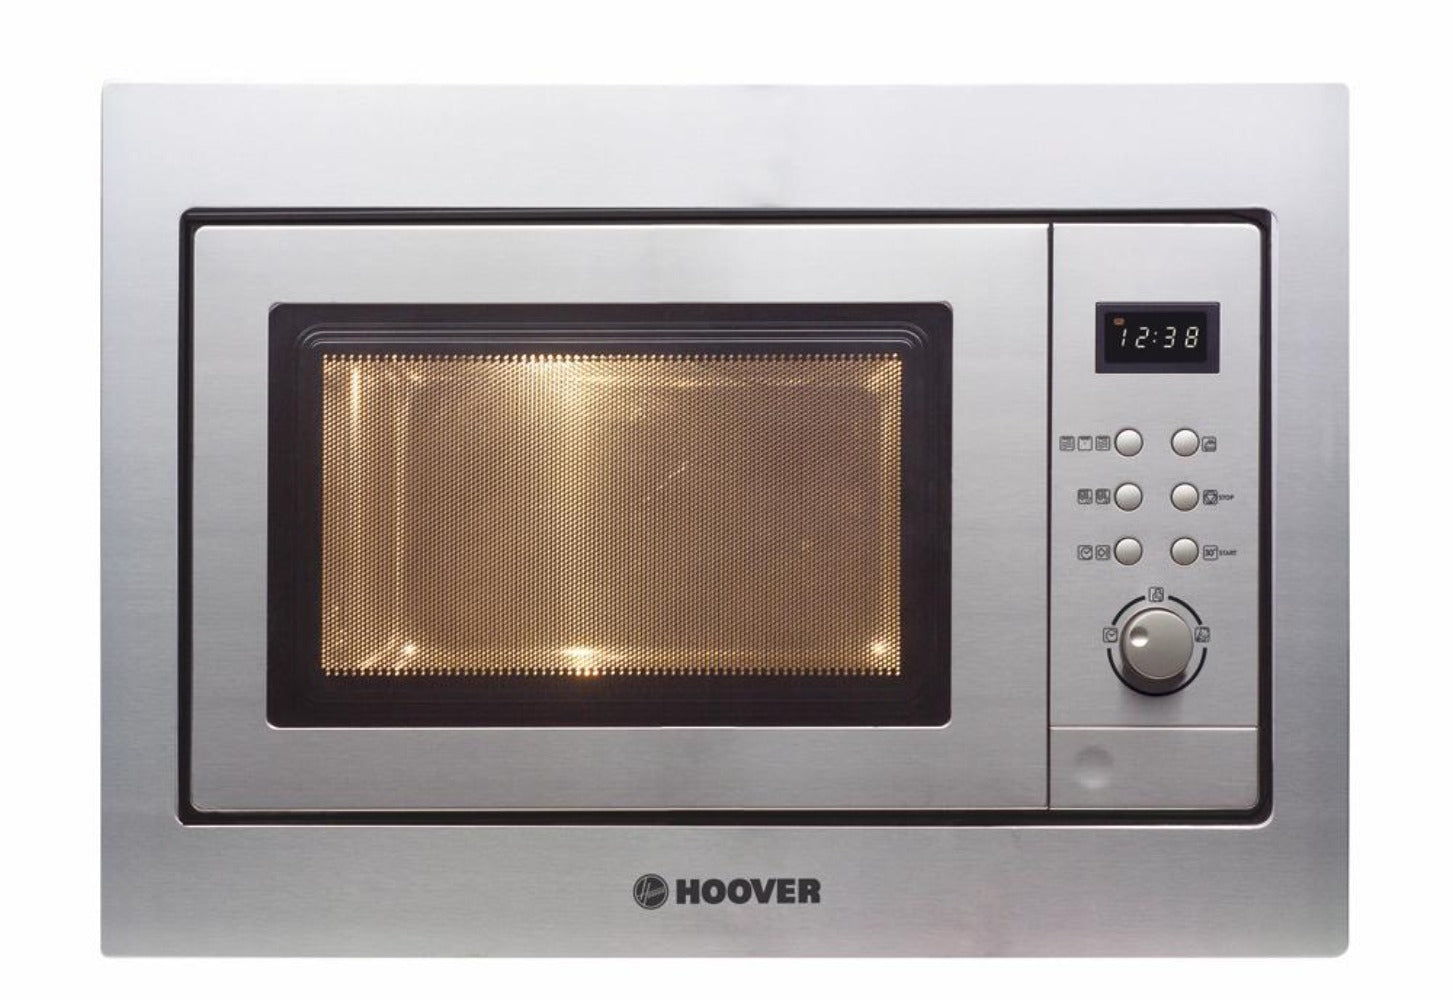 Hoover HMG 171X 17L BUILT-IN MICROWAVE OVEN AND GRILL - Stainless Steel